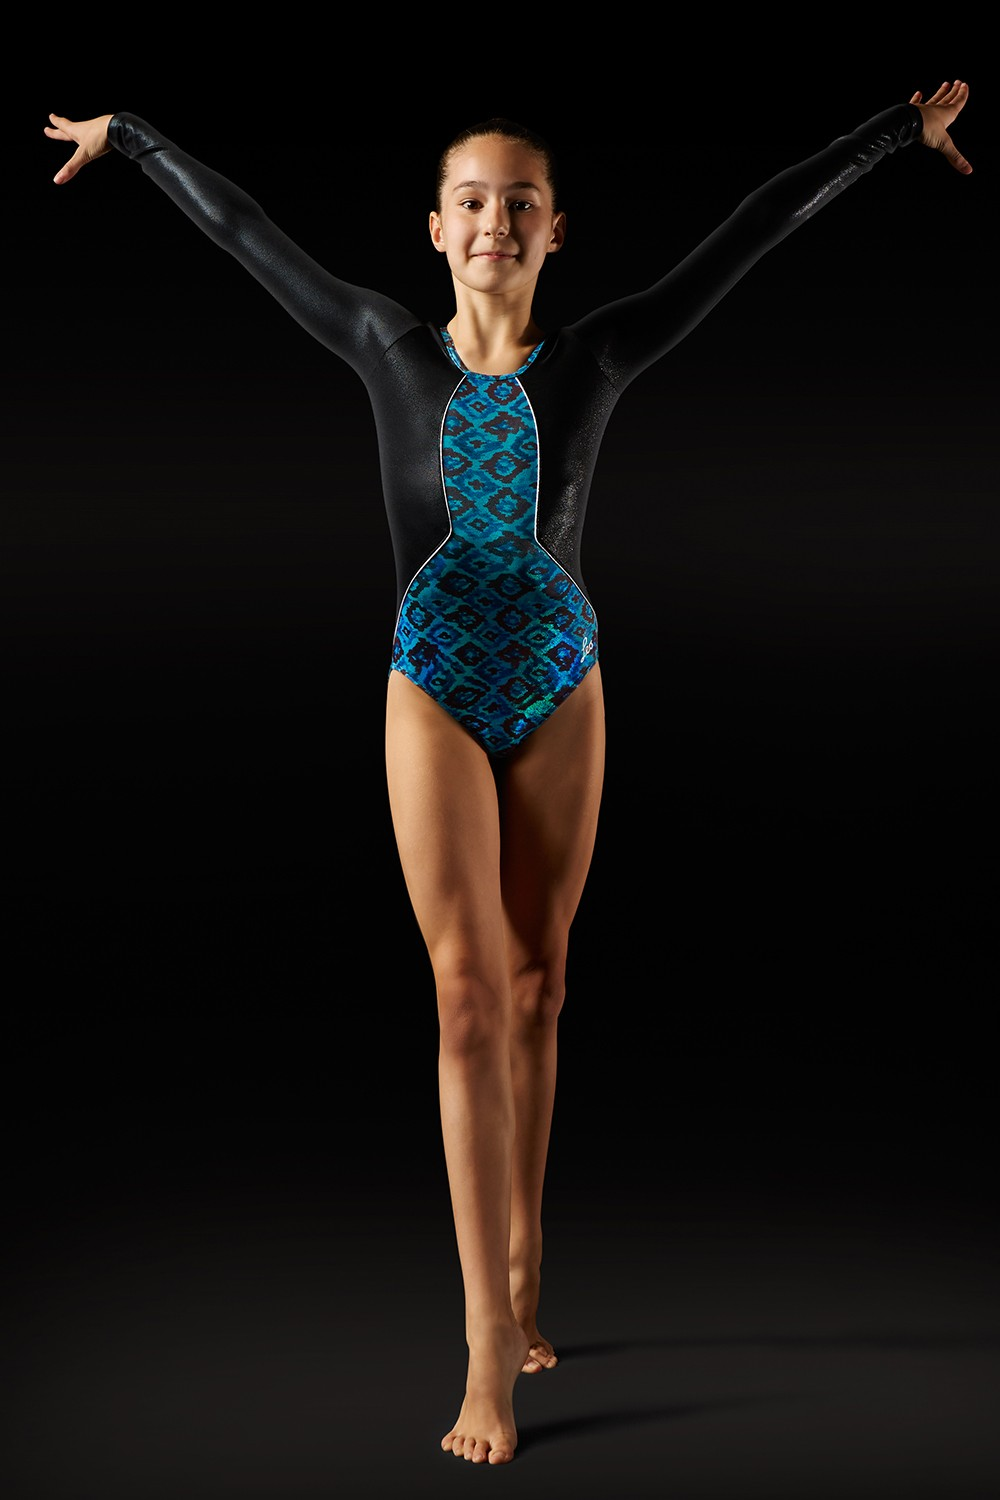 Aztec Long Sleeve Leotard Women's Gymnastics Leotards